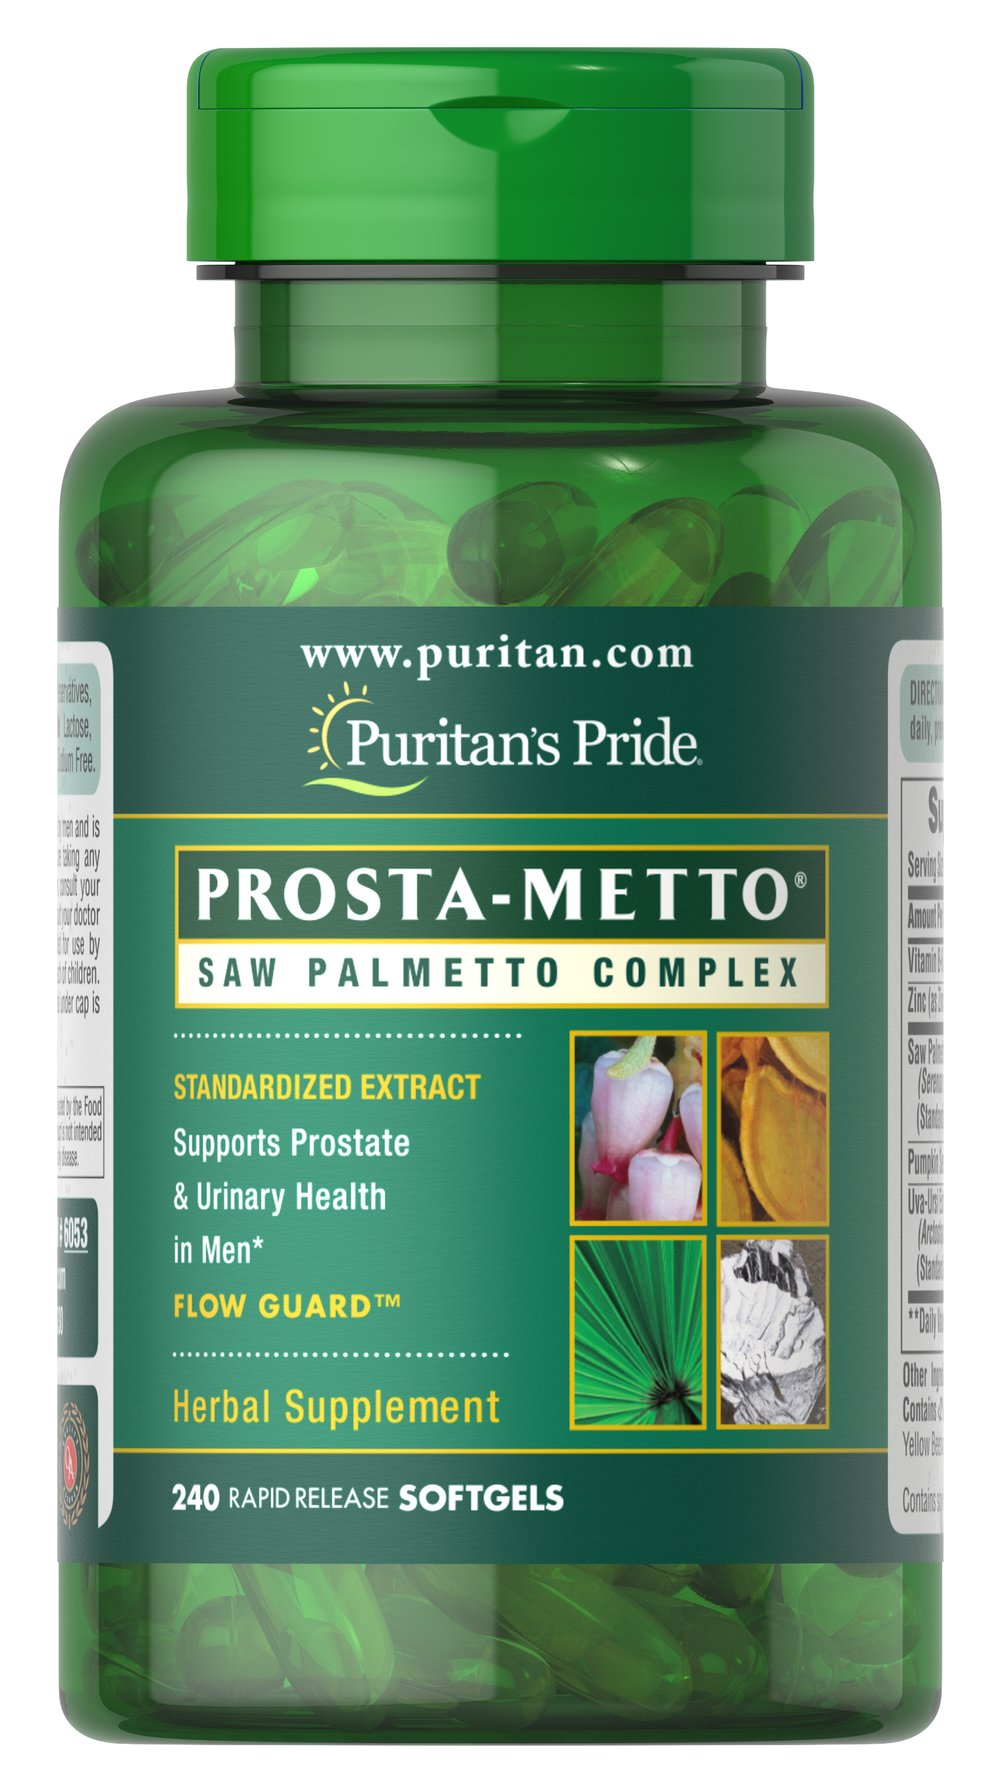 Prosta-Metto® Saw Palmetto Complex For Men <p>Extra Strength Prosta-Metto® softgels deliver 160 mg of standardized Saw Palmetto to support prostate and urinary health in men.** Saw Palmetto is an extract derived from the berry of the Saw Palmetto tree and is the leading herb for men's health.** This formulation also includes Pumpkin Seed Oil, Pygeum and Uva-Ursi, traditional ingredients for men's health, plus Zinc for the immune system.** </p>  240 Softgels  $46.99